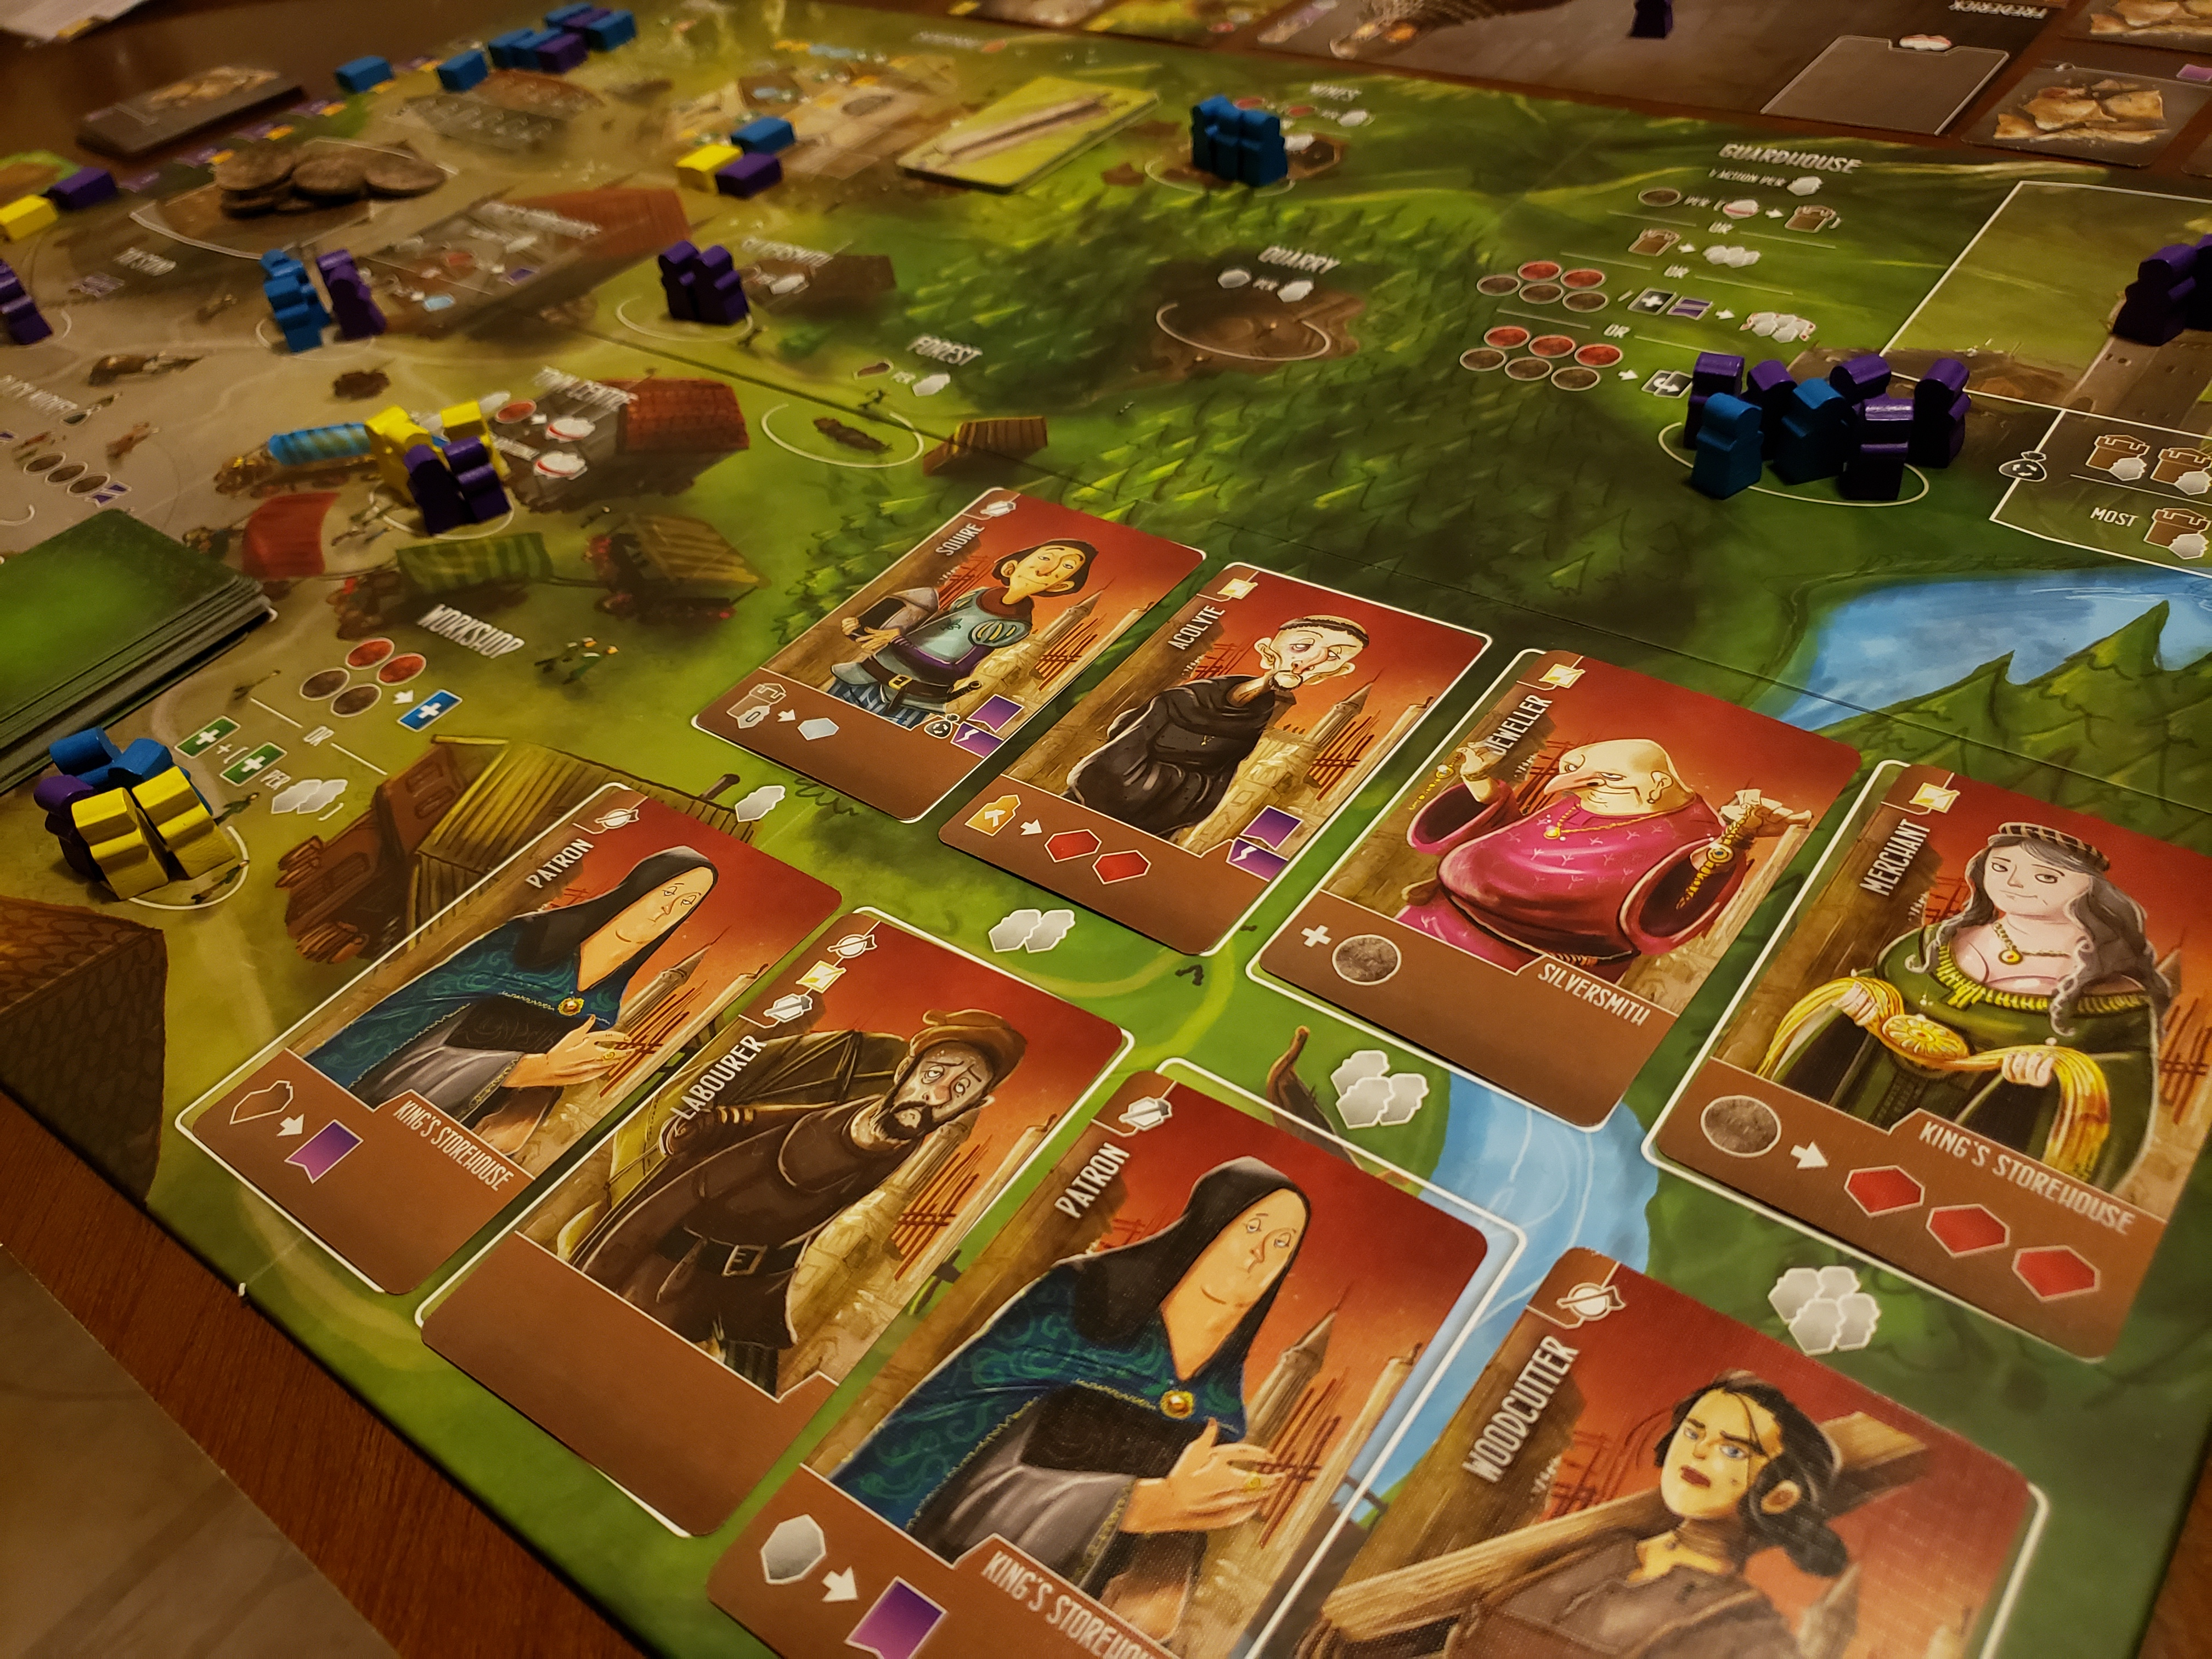 Architects of the West Kingdom Worker Placement Game